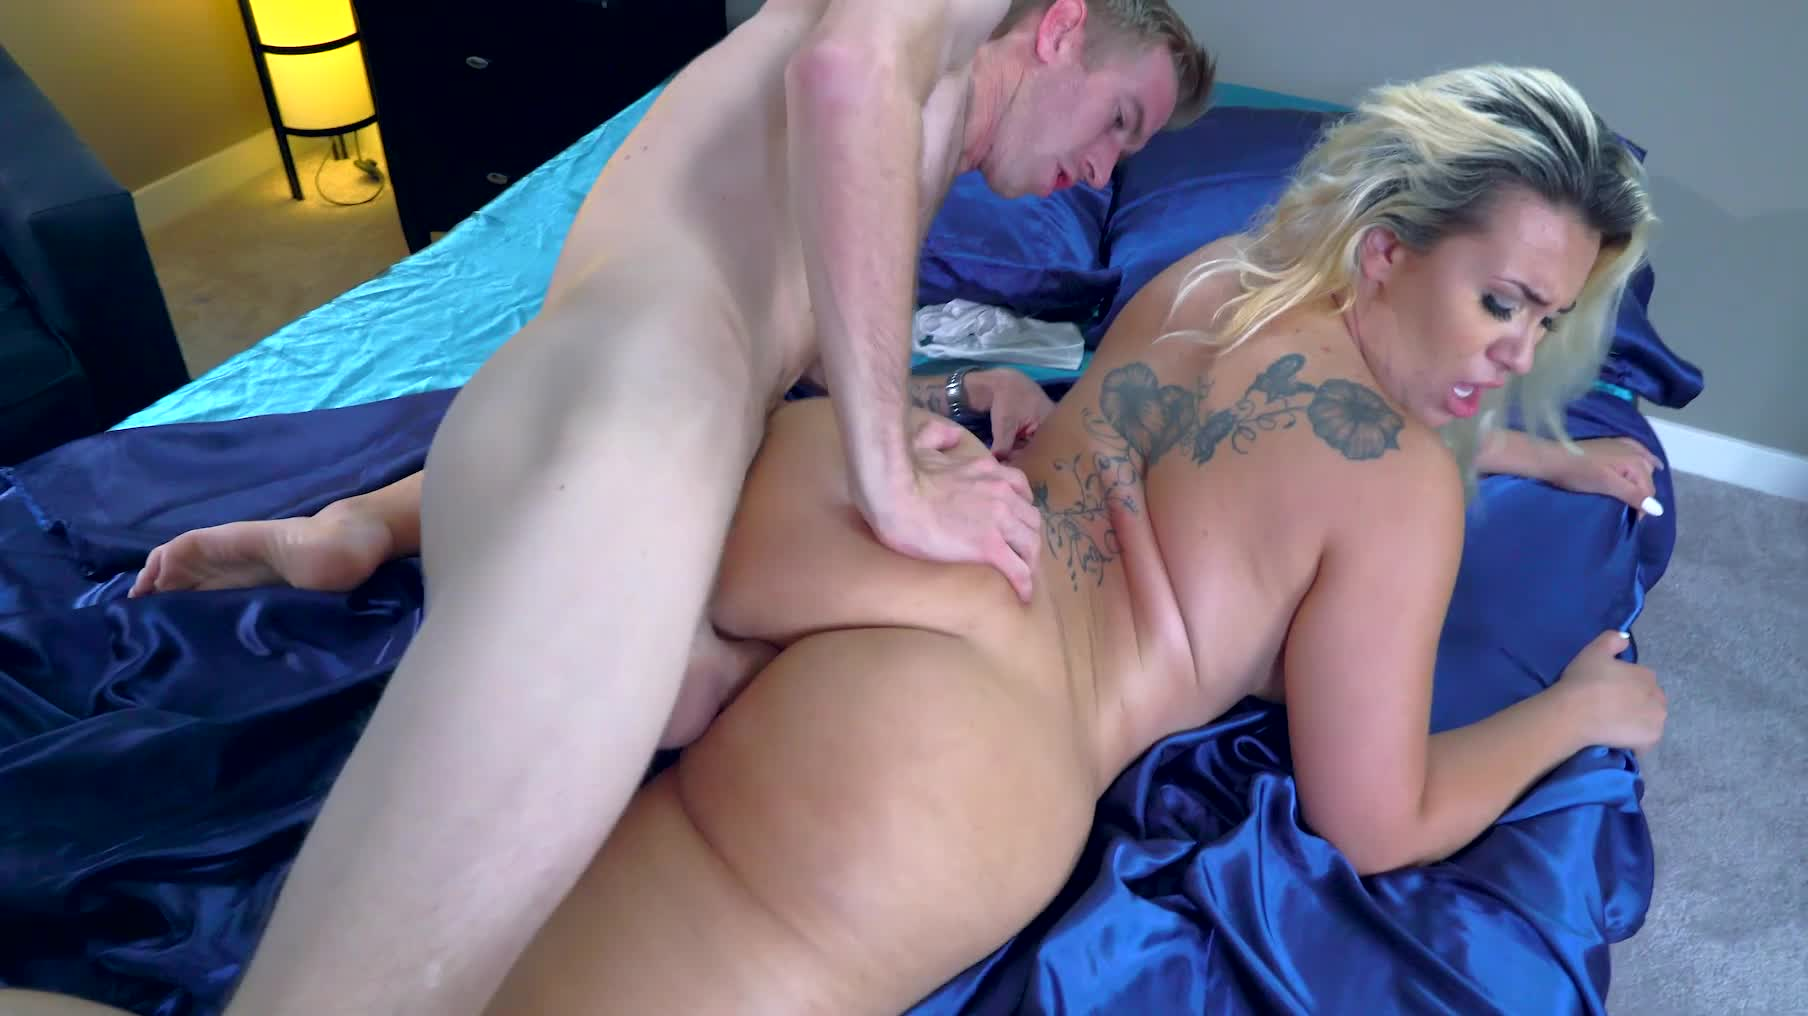 xxxl tits a big ass blonde with tattoos on her back is getting fucked